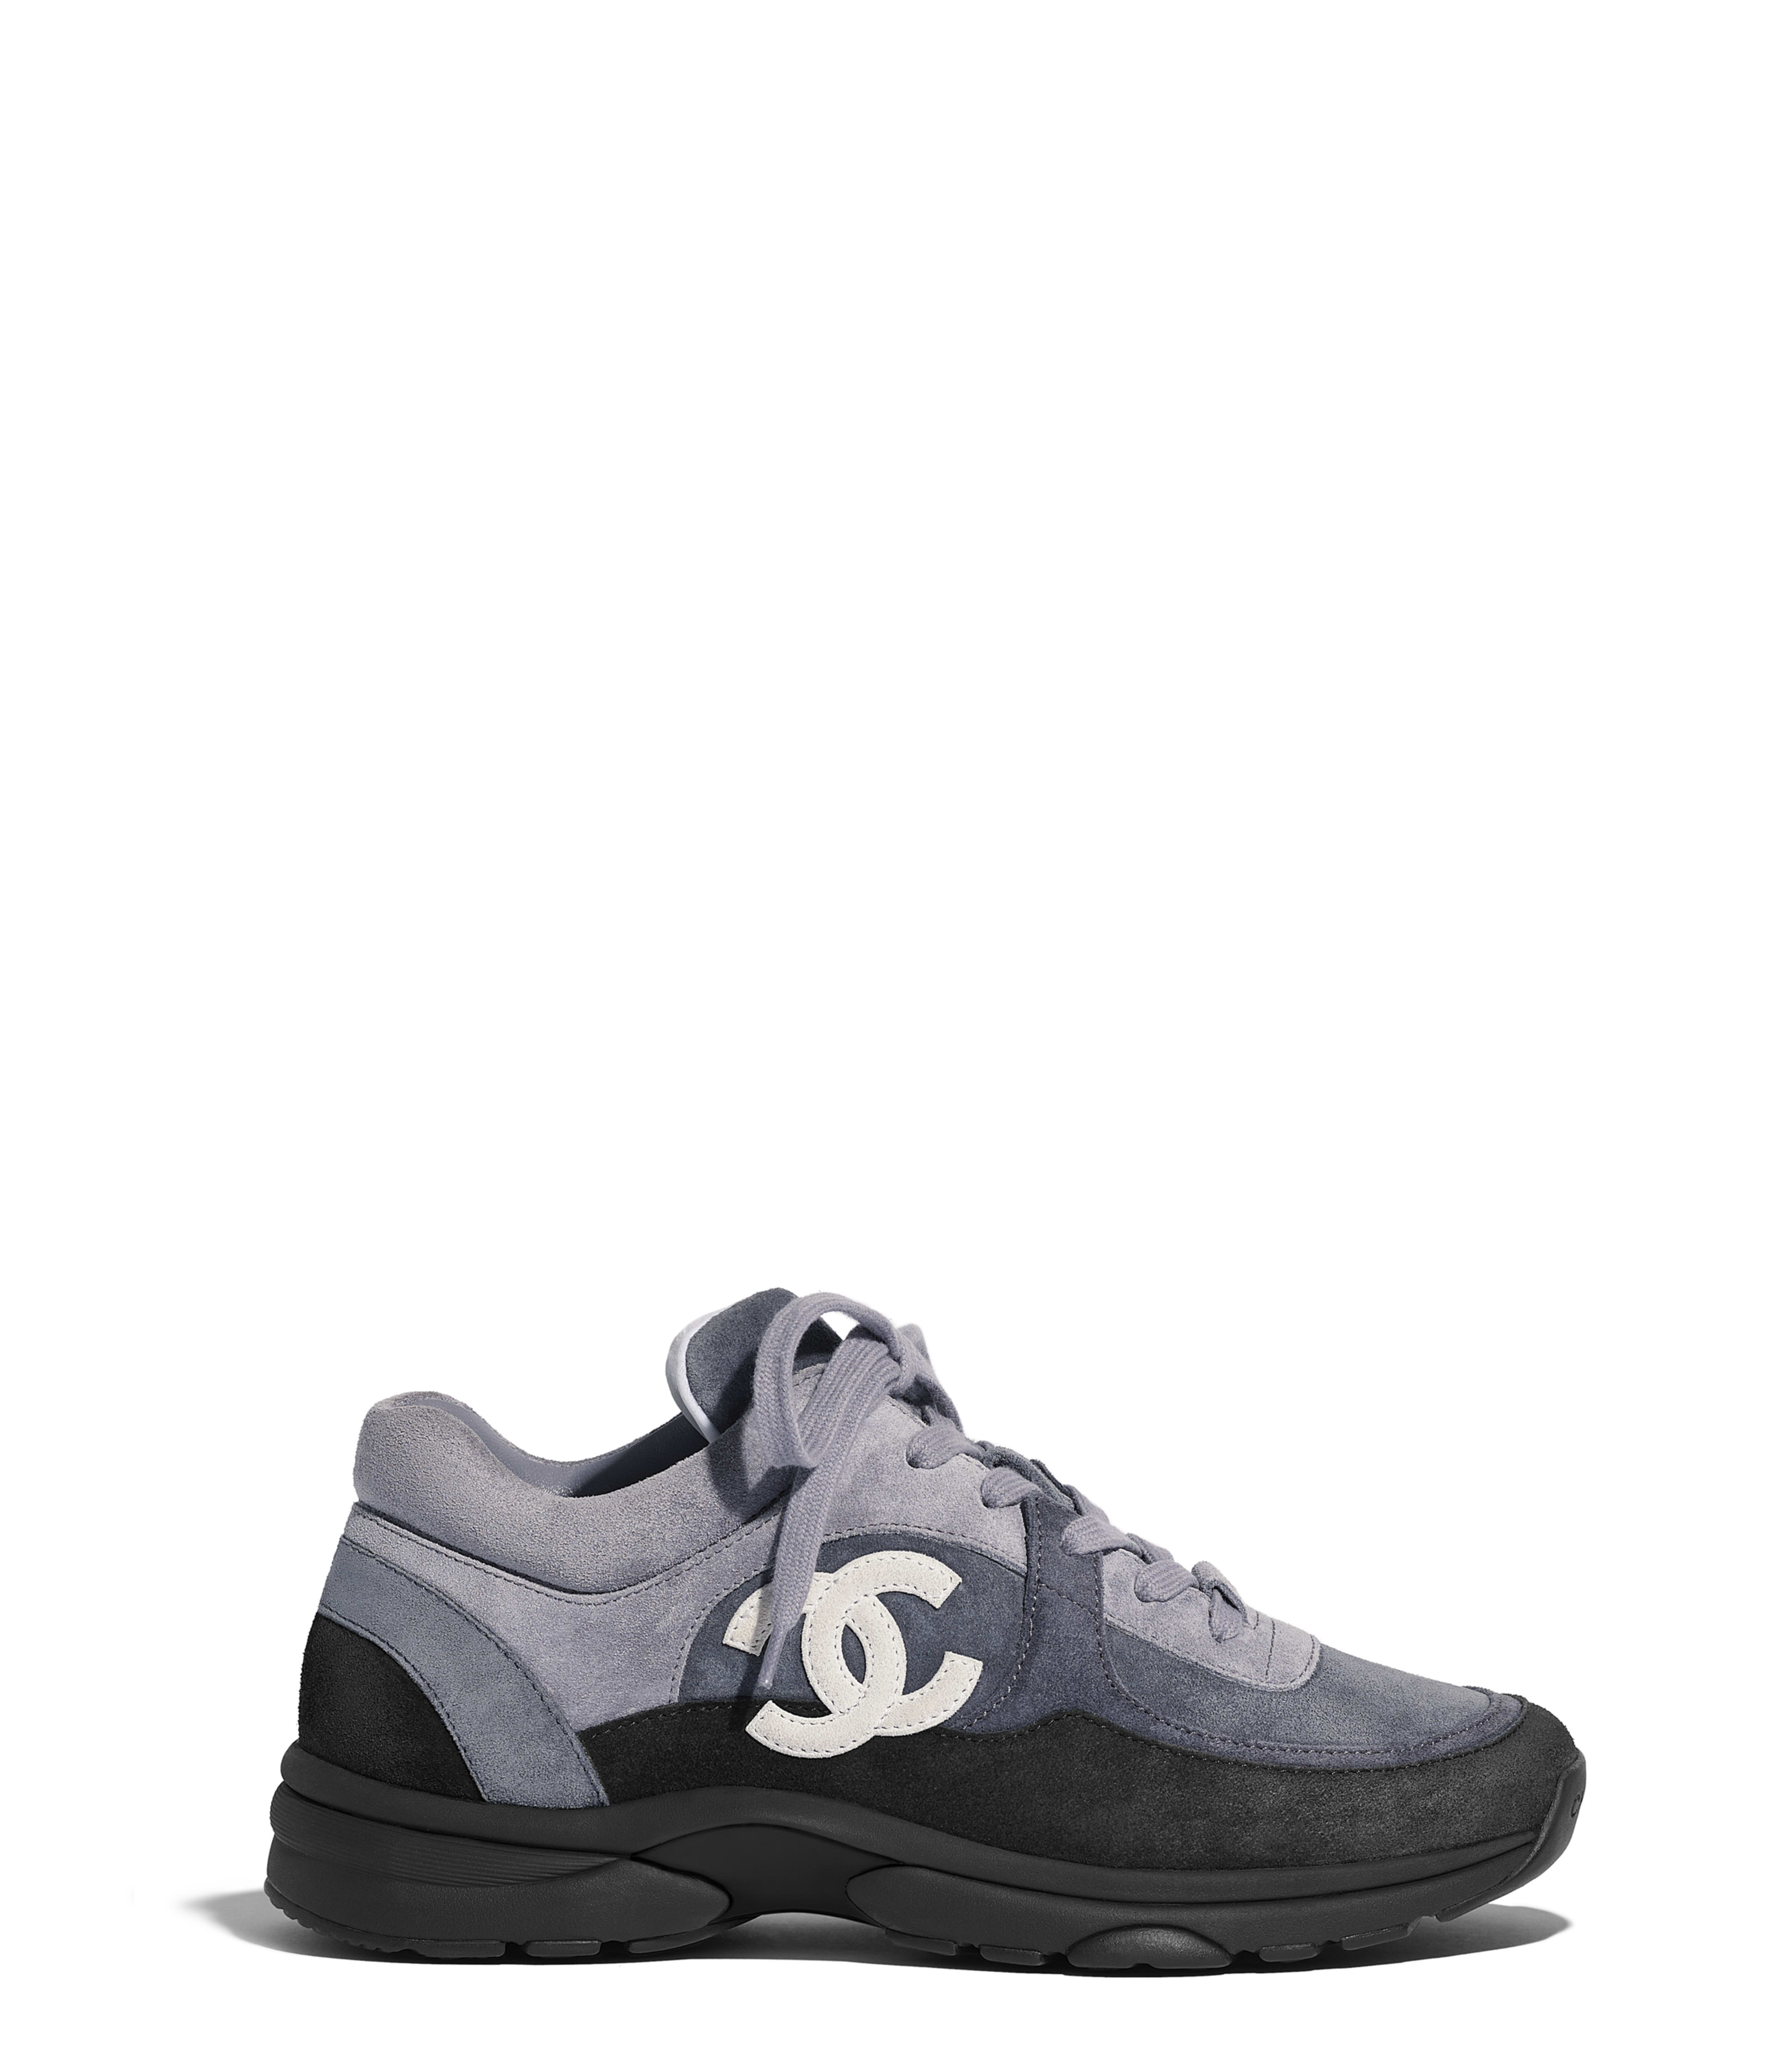 d51be3a16f5 Sneakers Suede Calfskin